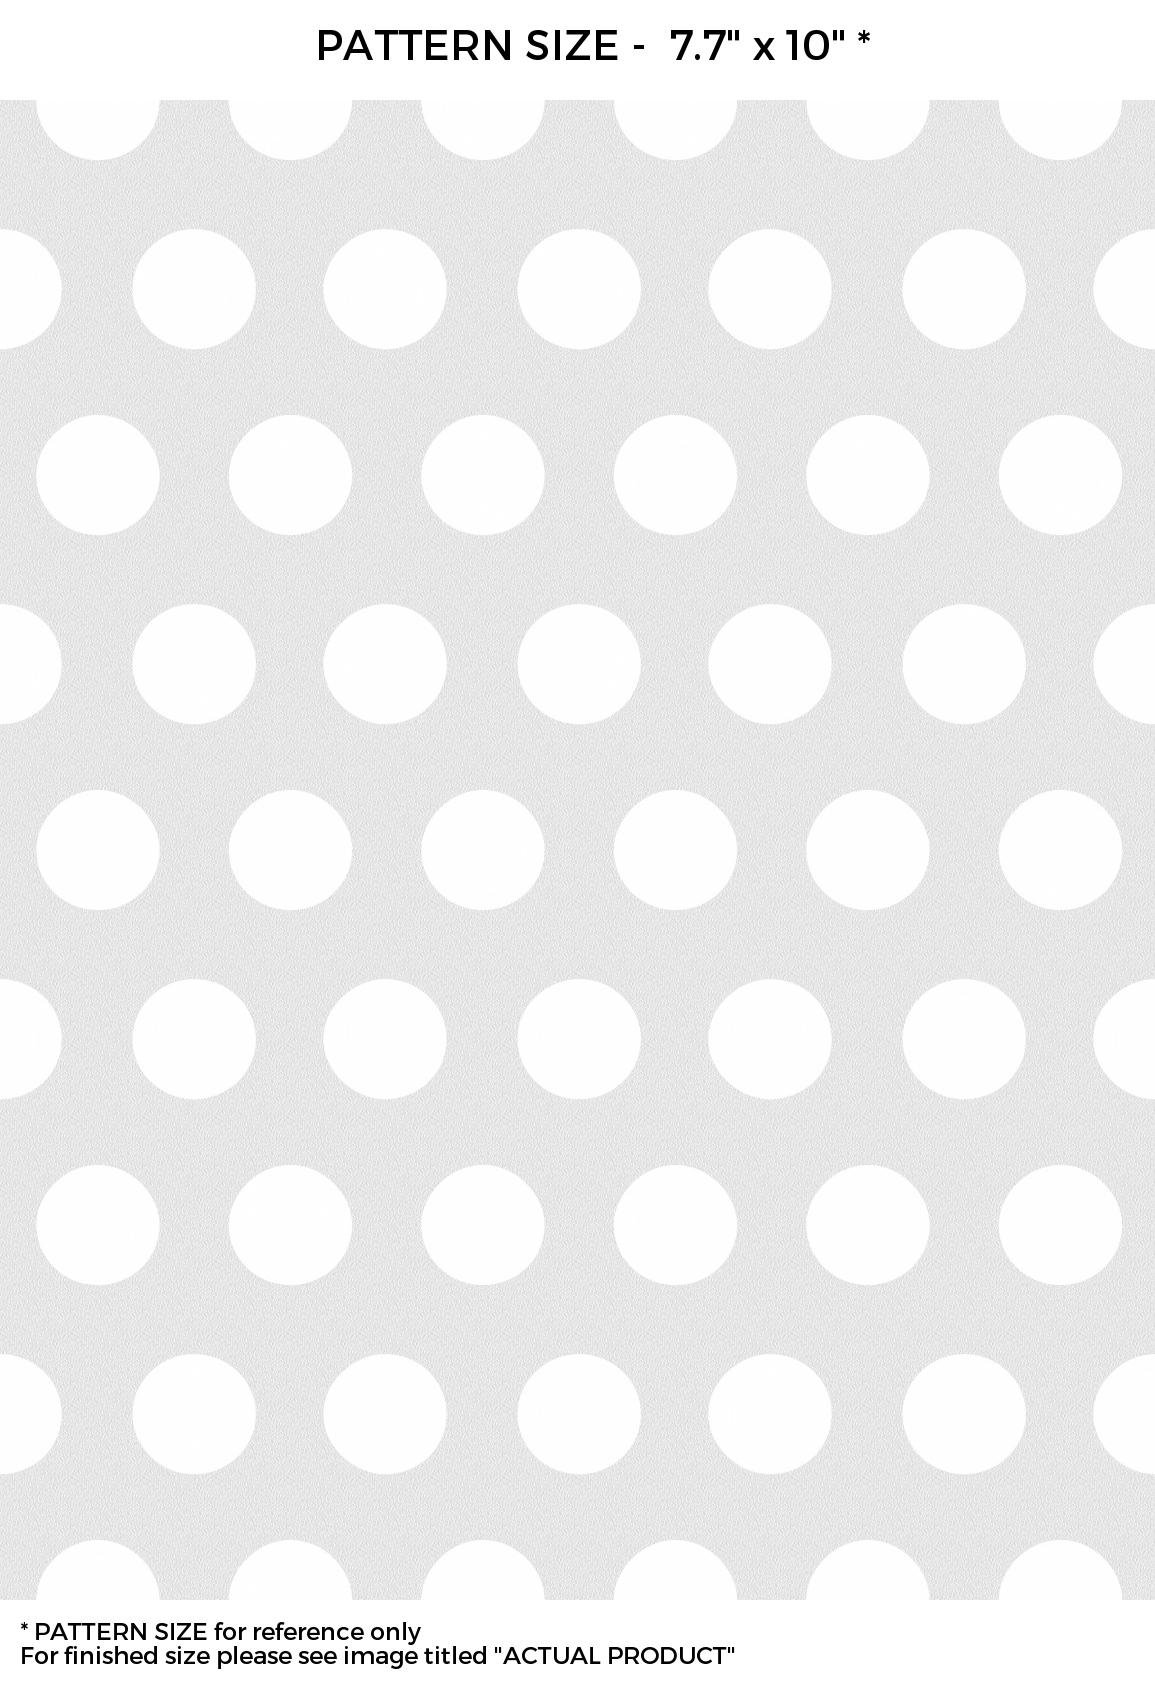 WindowPix 12 x 48 White Polka Dotted Wall Pattern Frosted Window Film Privacy Static Cling Film UV Filtering Energy Saving